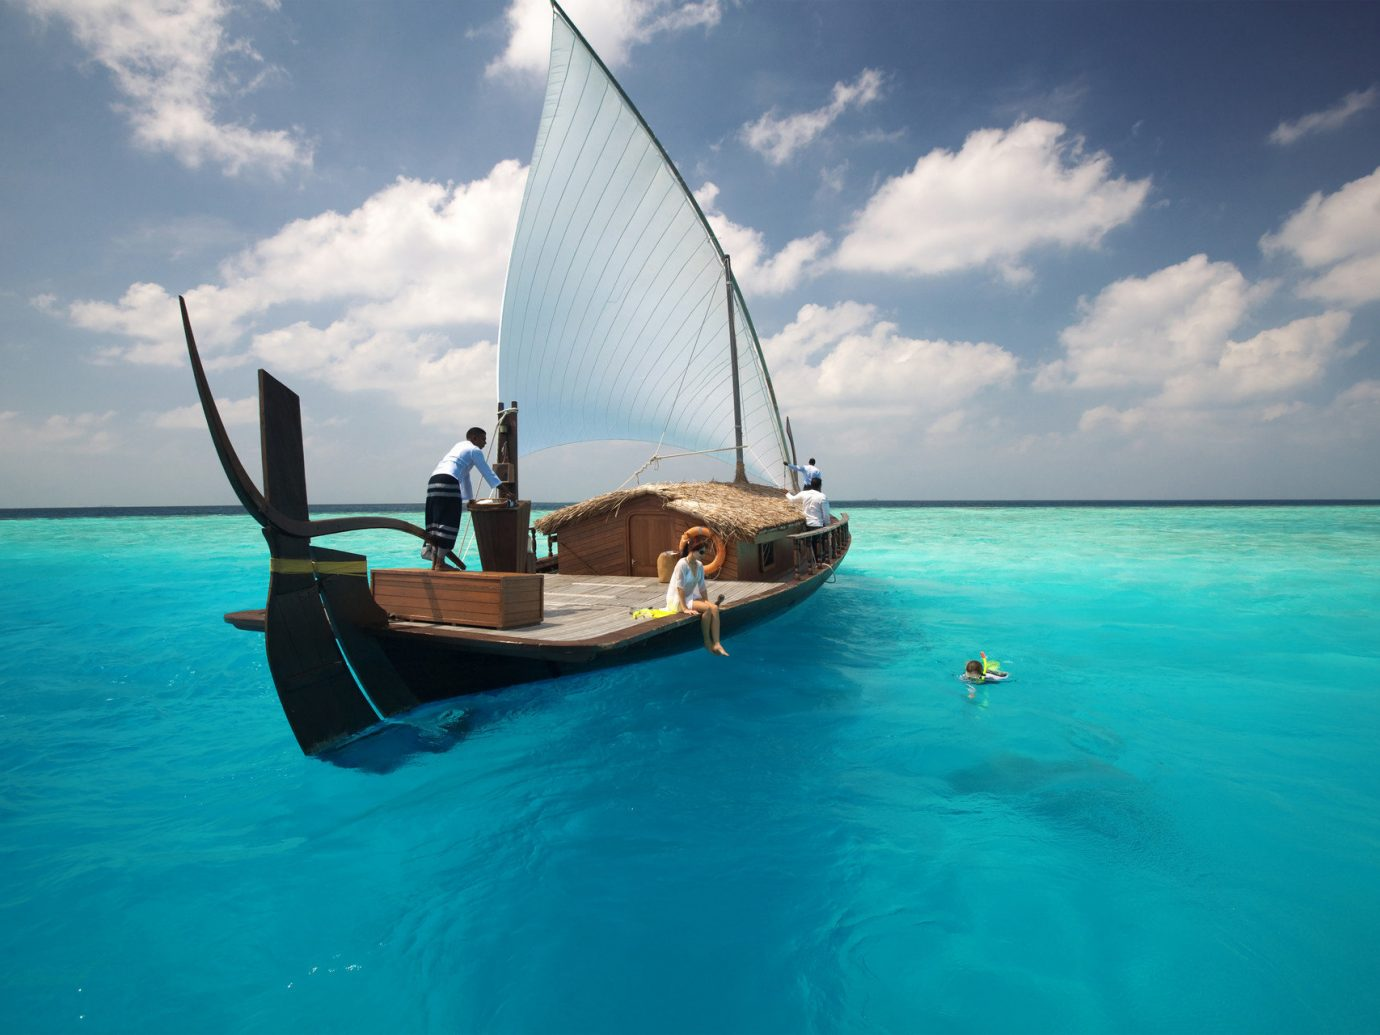 Boat calm clear water Hotels isolation Luxury Ocean people private remote rendering sailboat serene turquoise sky water outdoor Sea watercraft vehicle transport blue caribbean sail vacation bay sailing Lagoon Island sailing vessel